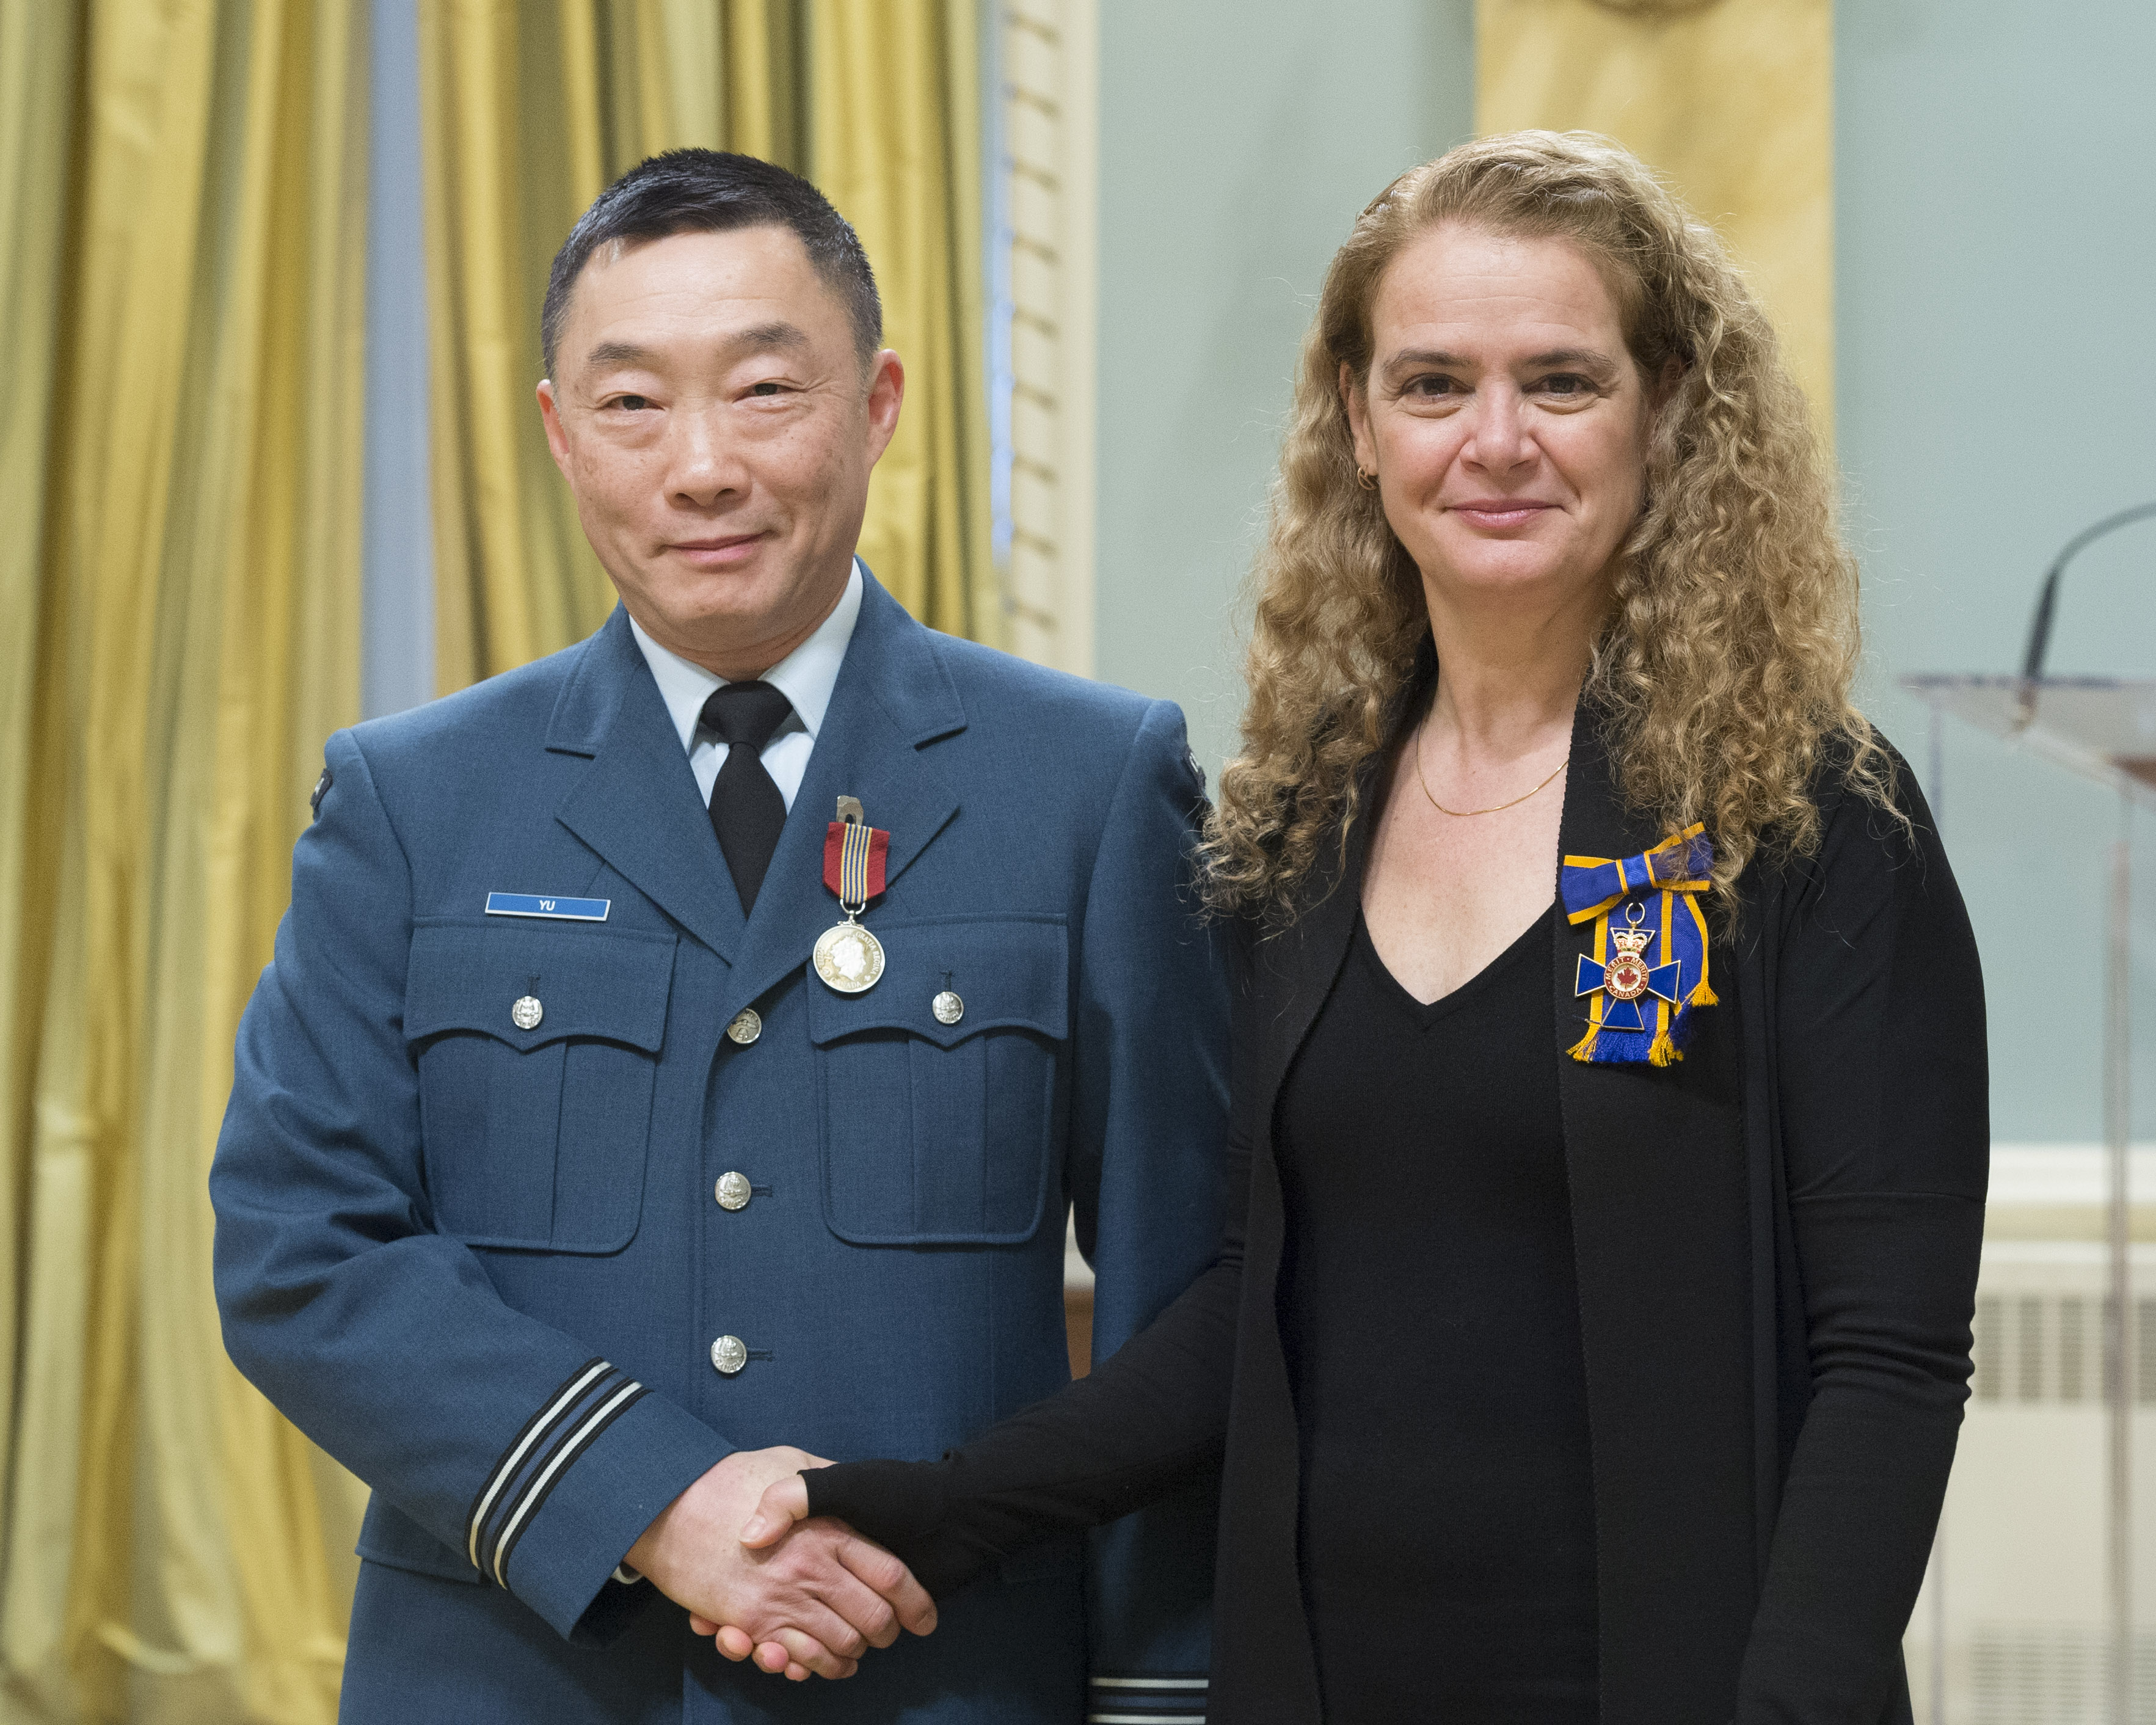 Captain Paul W. Yu receives the Sovereign's Medal for Volunteers from Governor General and Commander-in-Chief of Canada Julie Payette on February 28, 2018. PHOTO: Sergeant Johanie Maheu, GG05-2018-0066-065